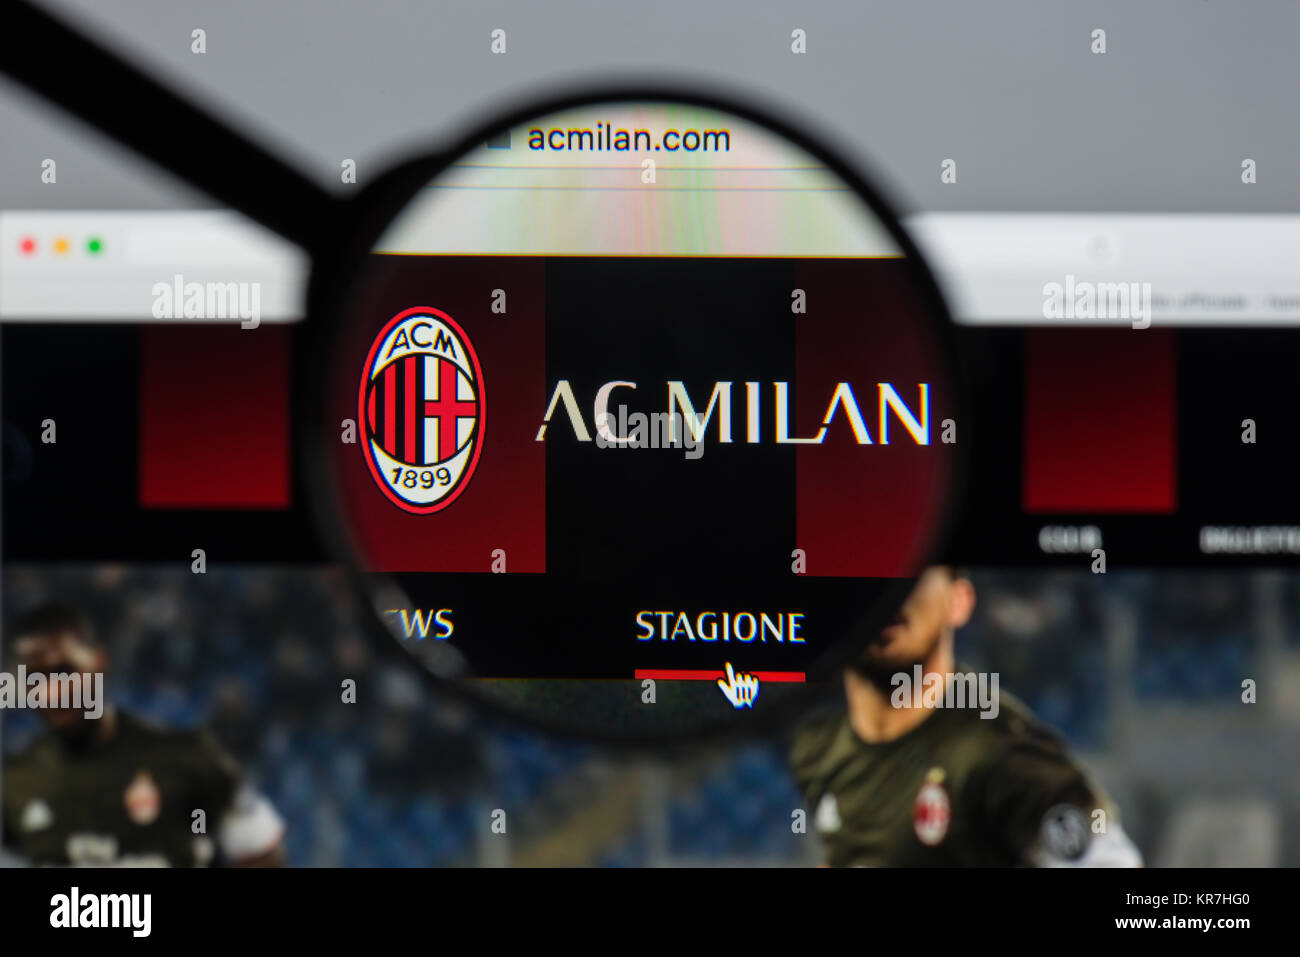 Milan Italy August   Ac Milan Website Homepage It Is A Professional Football Club In Milan Italy Founded In  Ac Milan Logo Visible